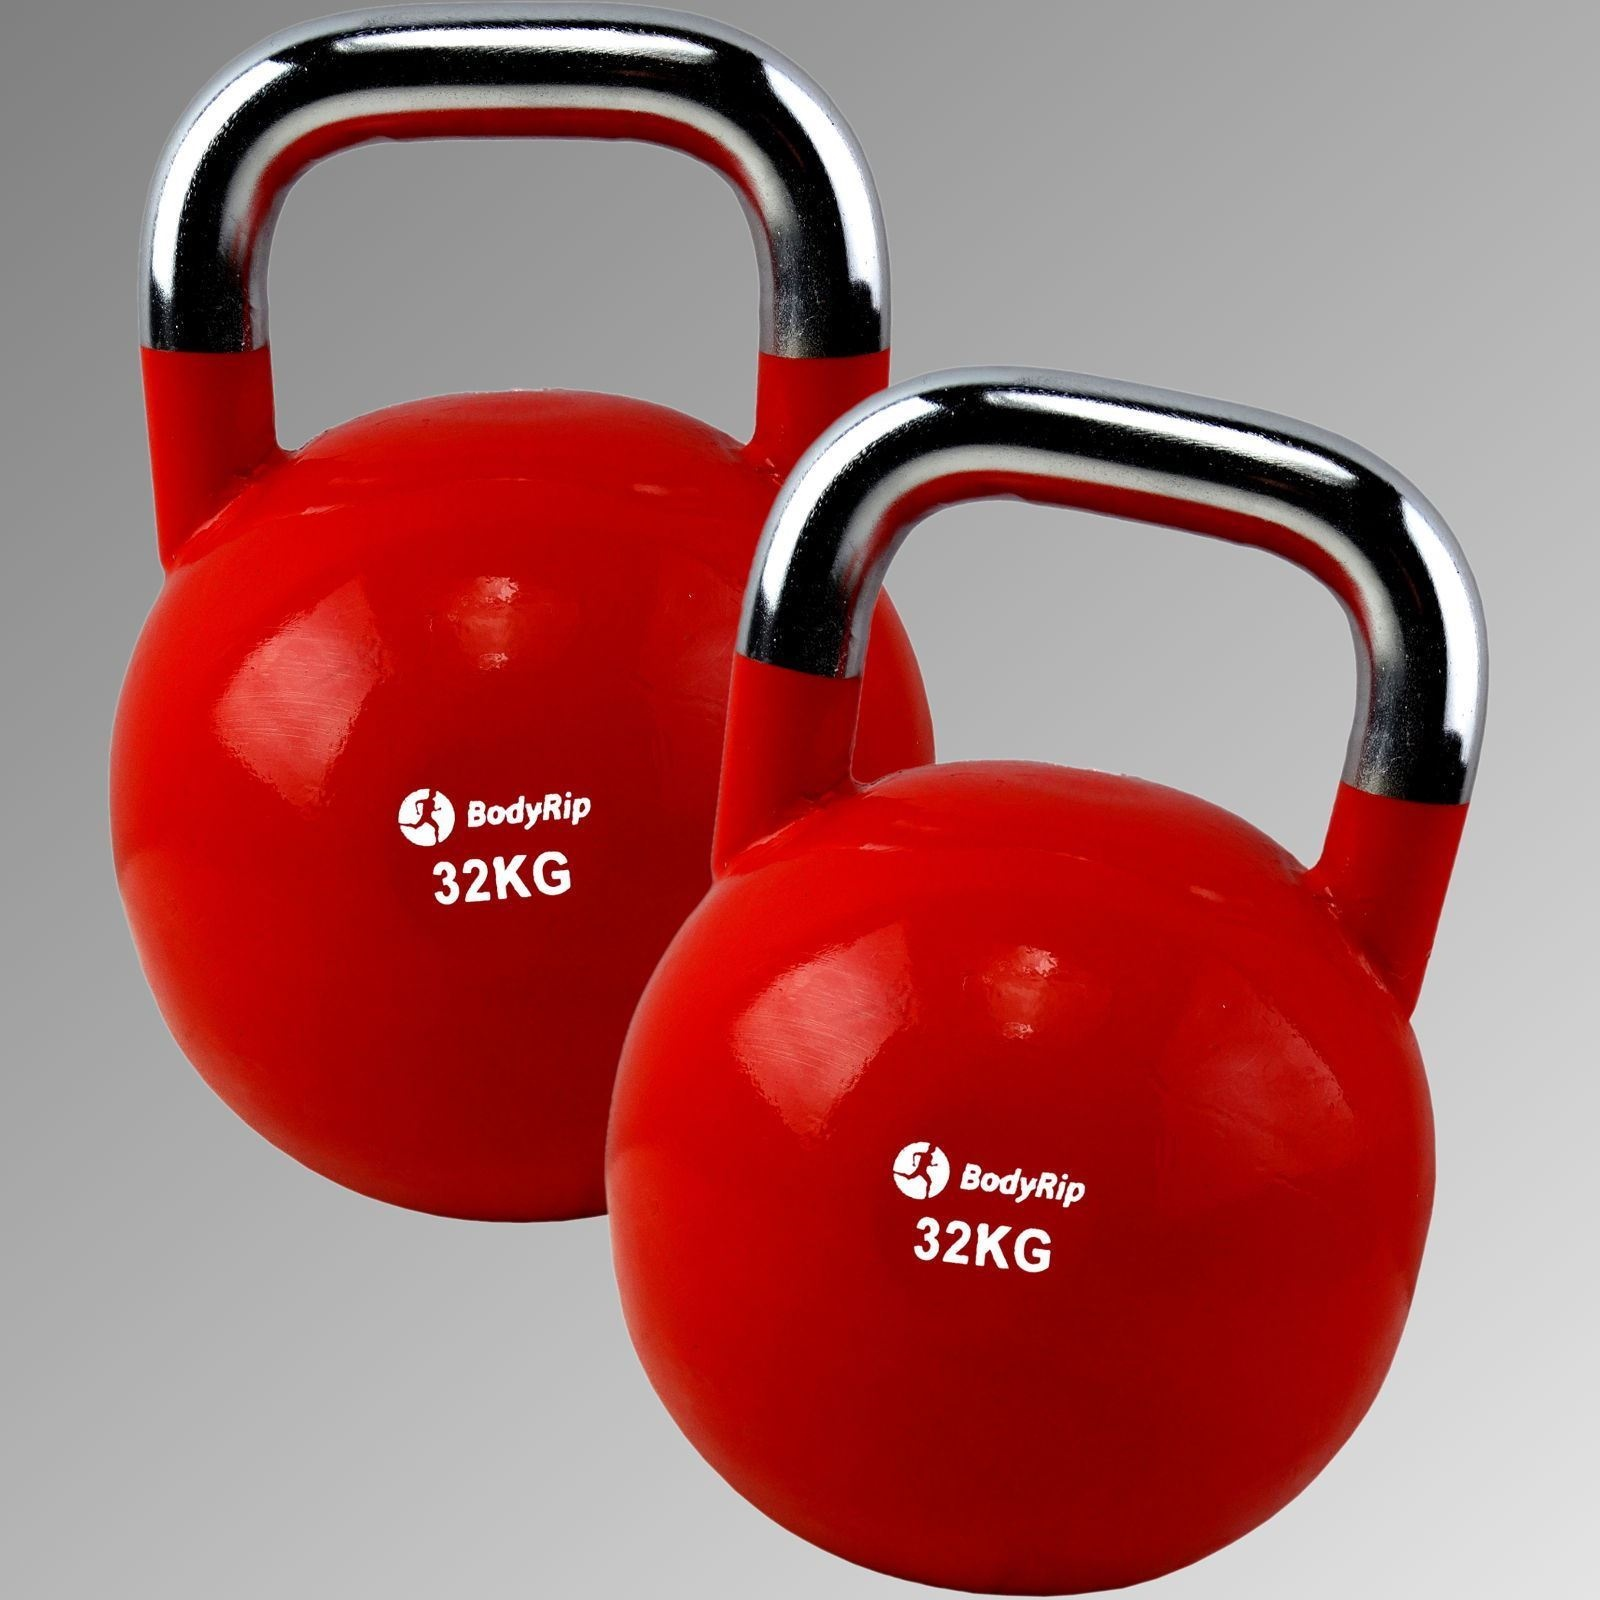 BodyRip 2 X 32KG Competition Kettlebell Mma Conditioning